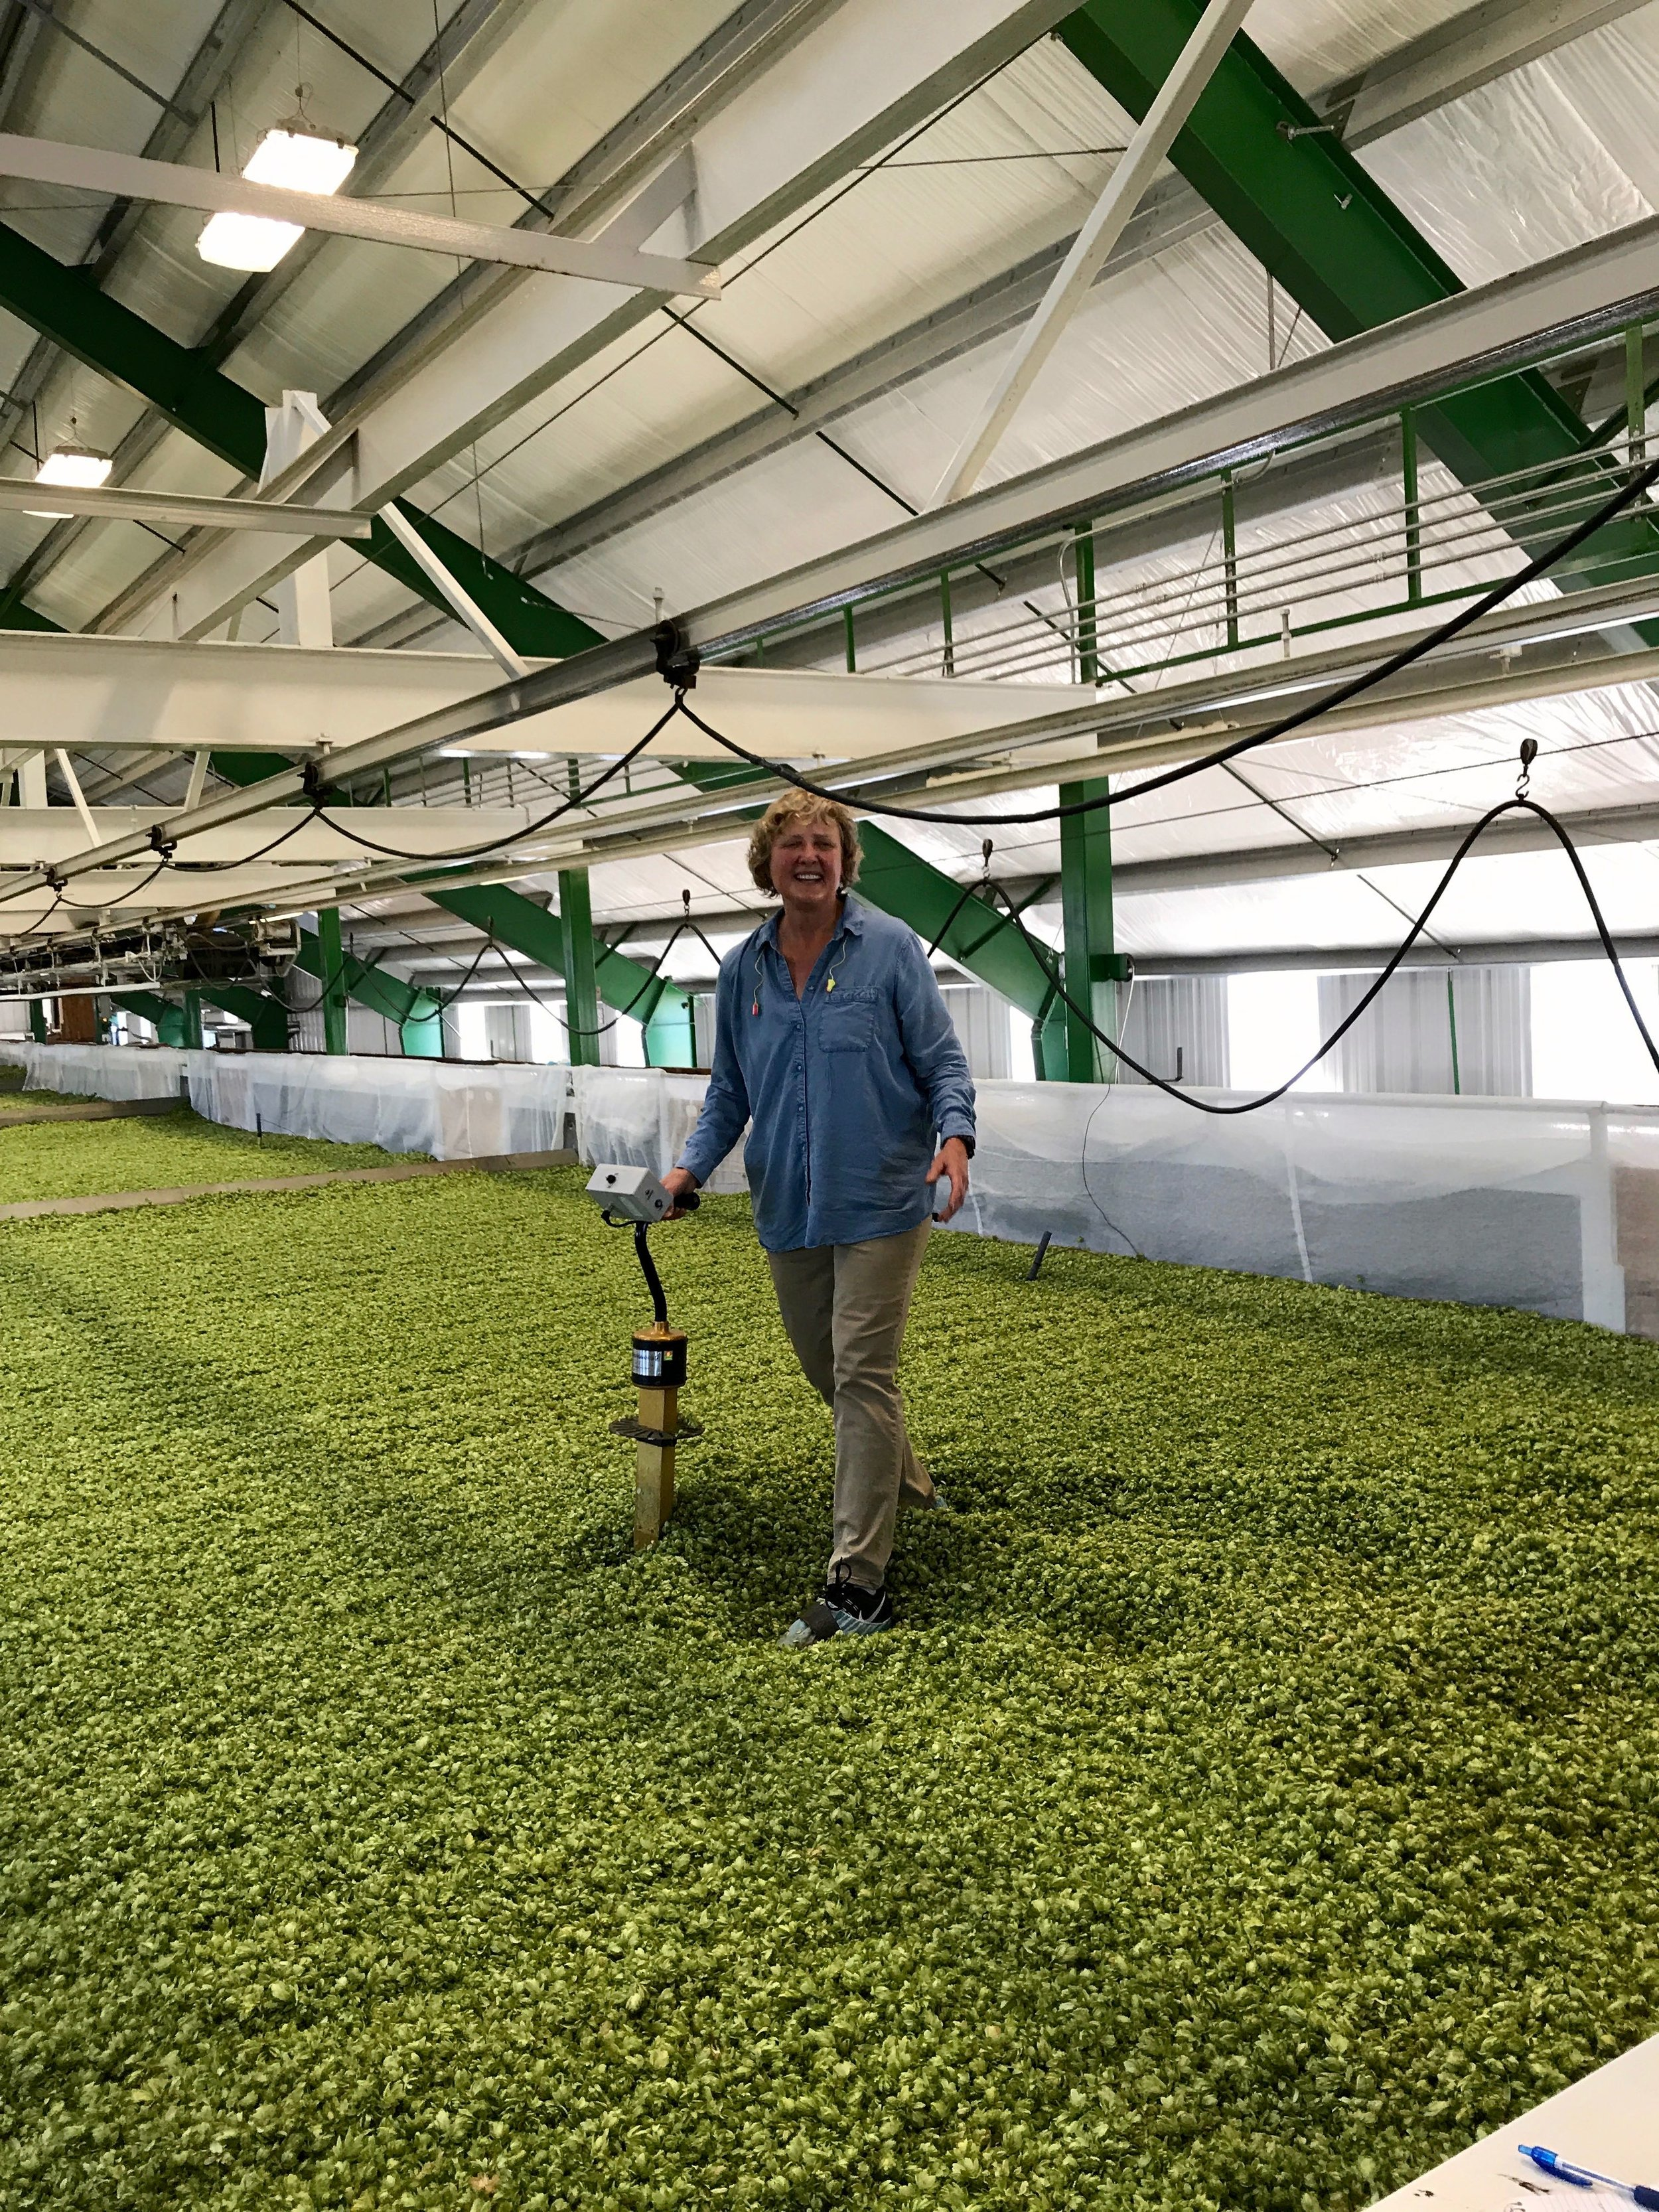 Gayle measures the moisture of the hops.